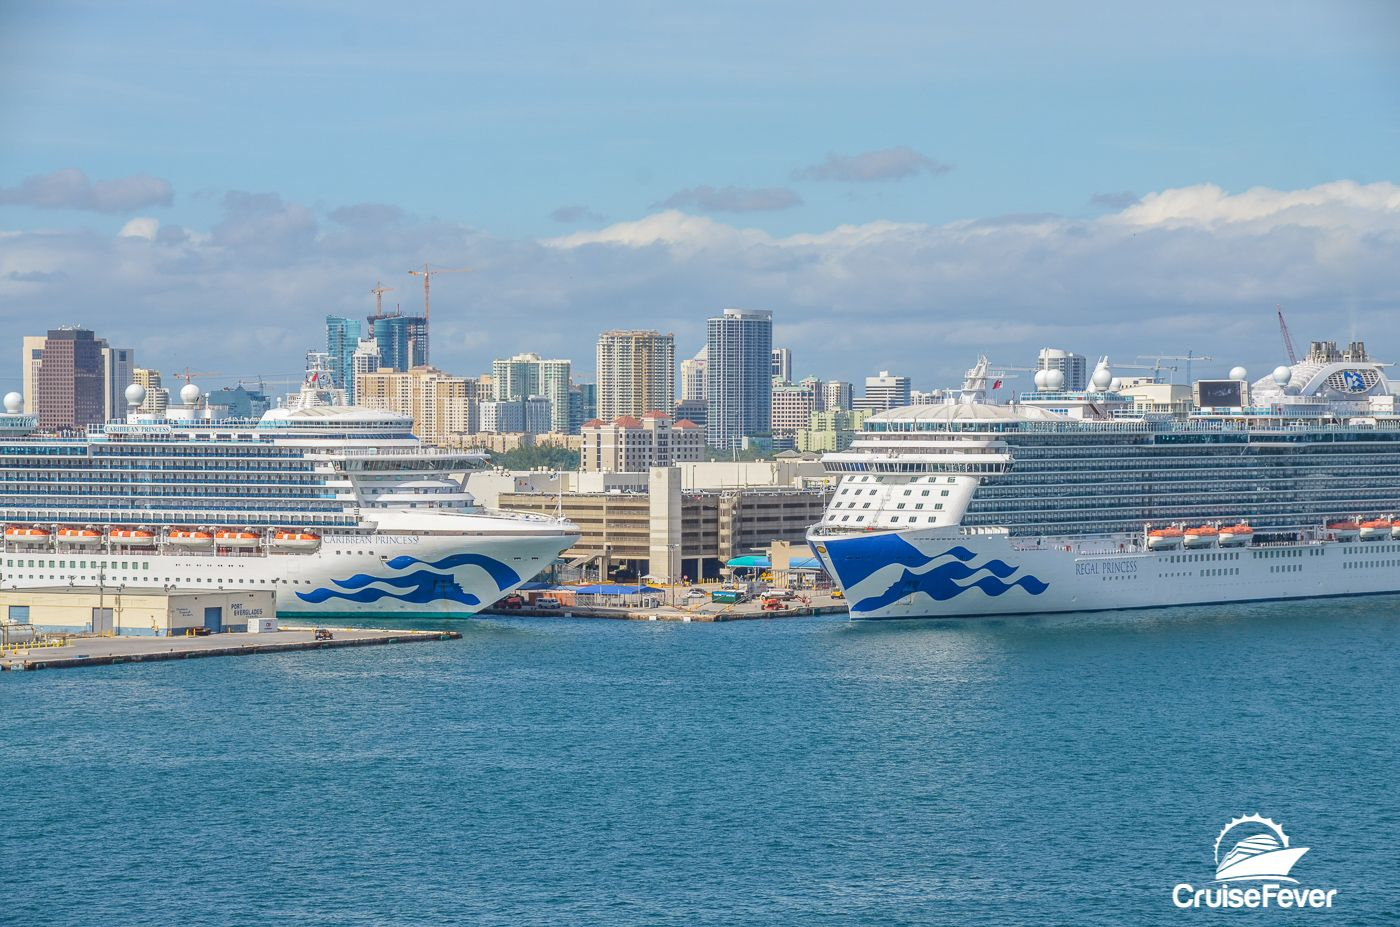 Hotels In Ft Lauderdale Near The Cruise Port Port Everglades Cruise Port Fort Lauderdale Airport Florida Hotels